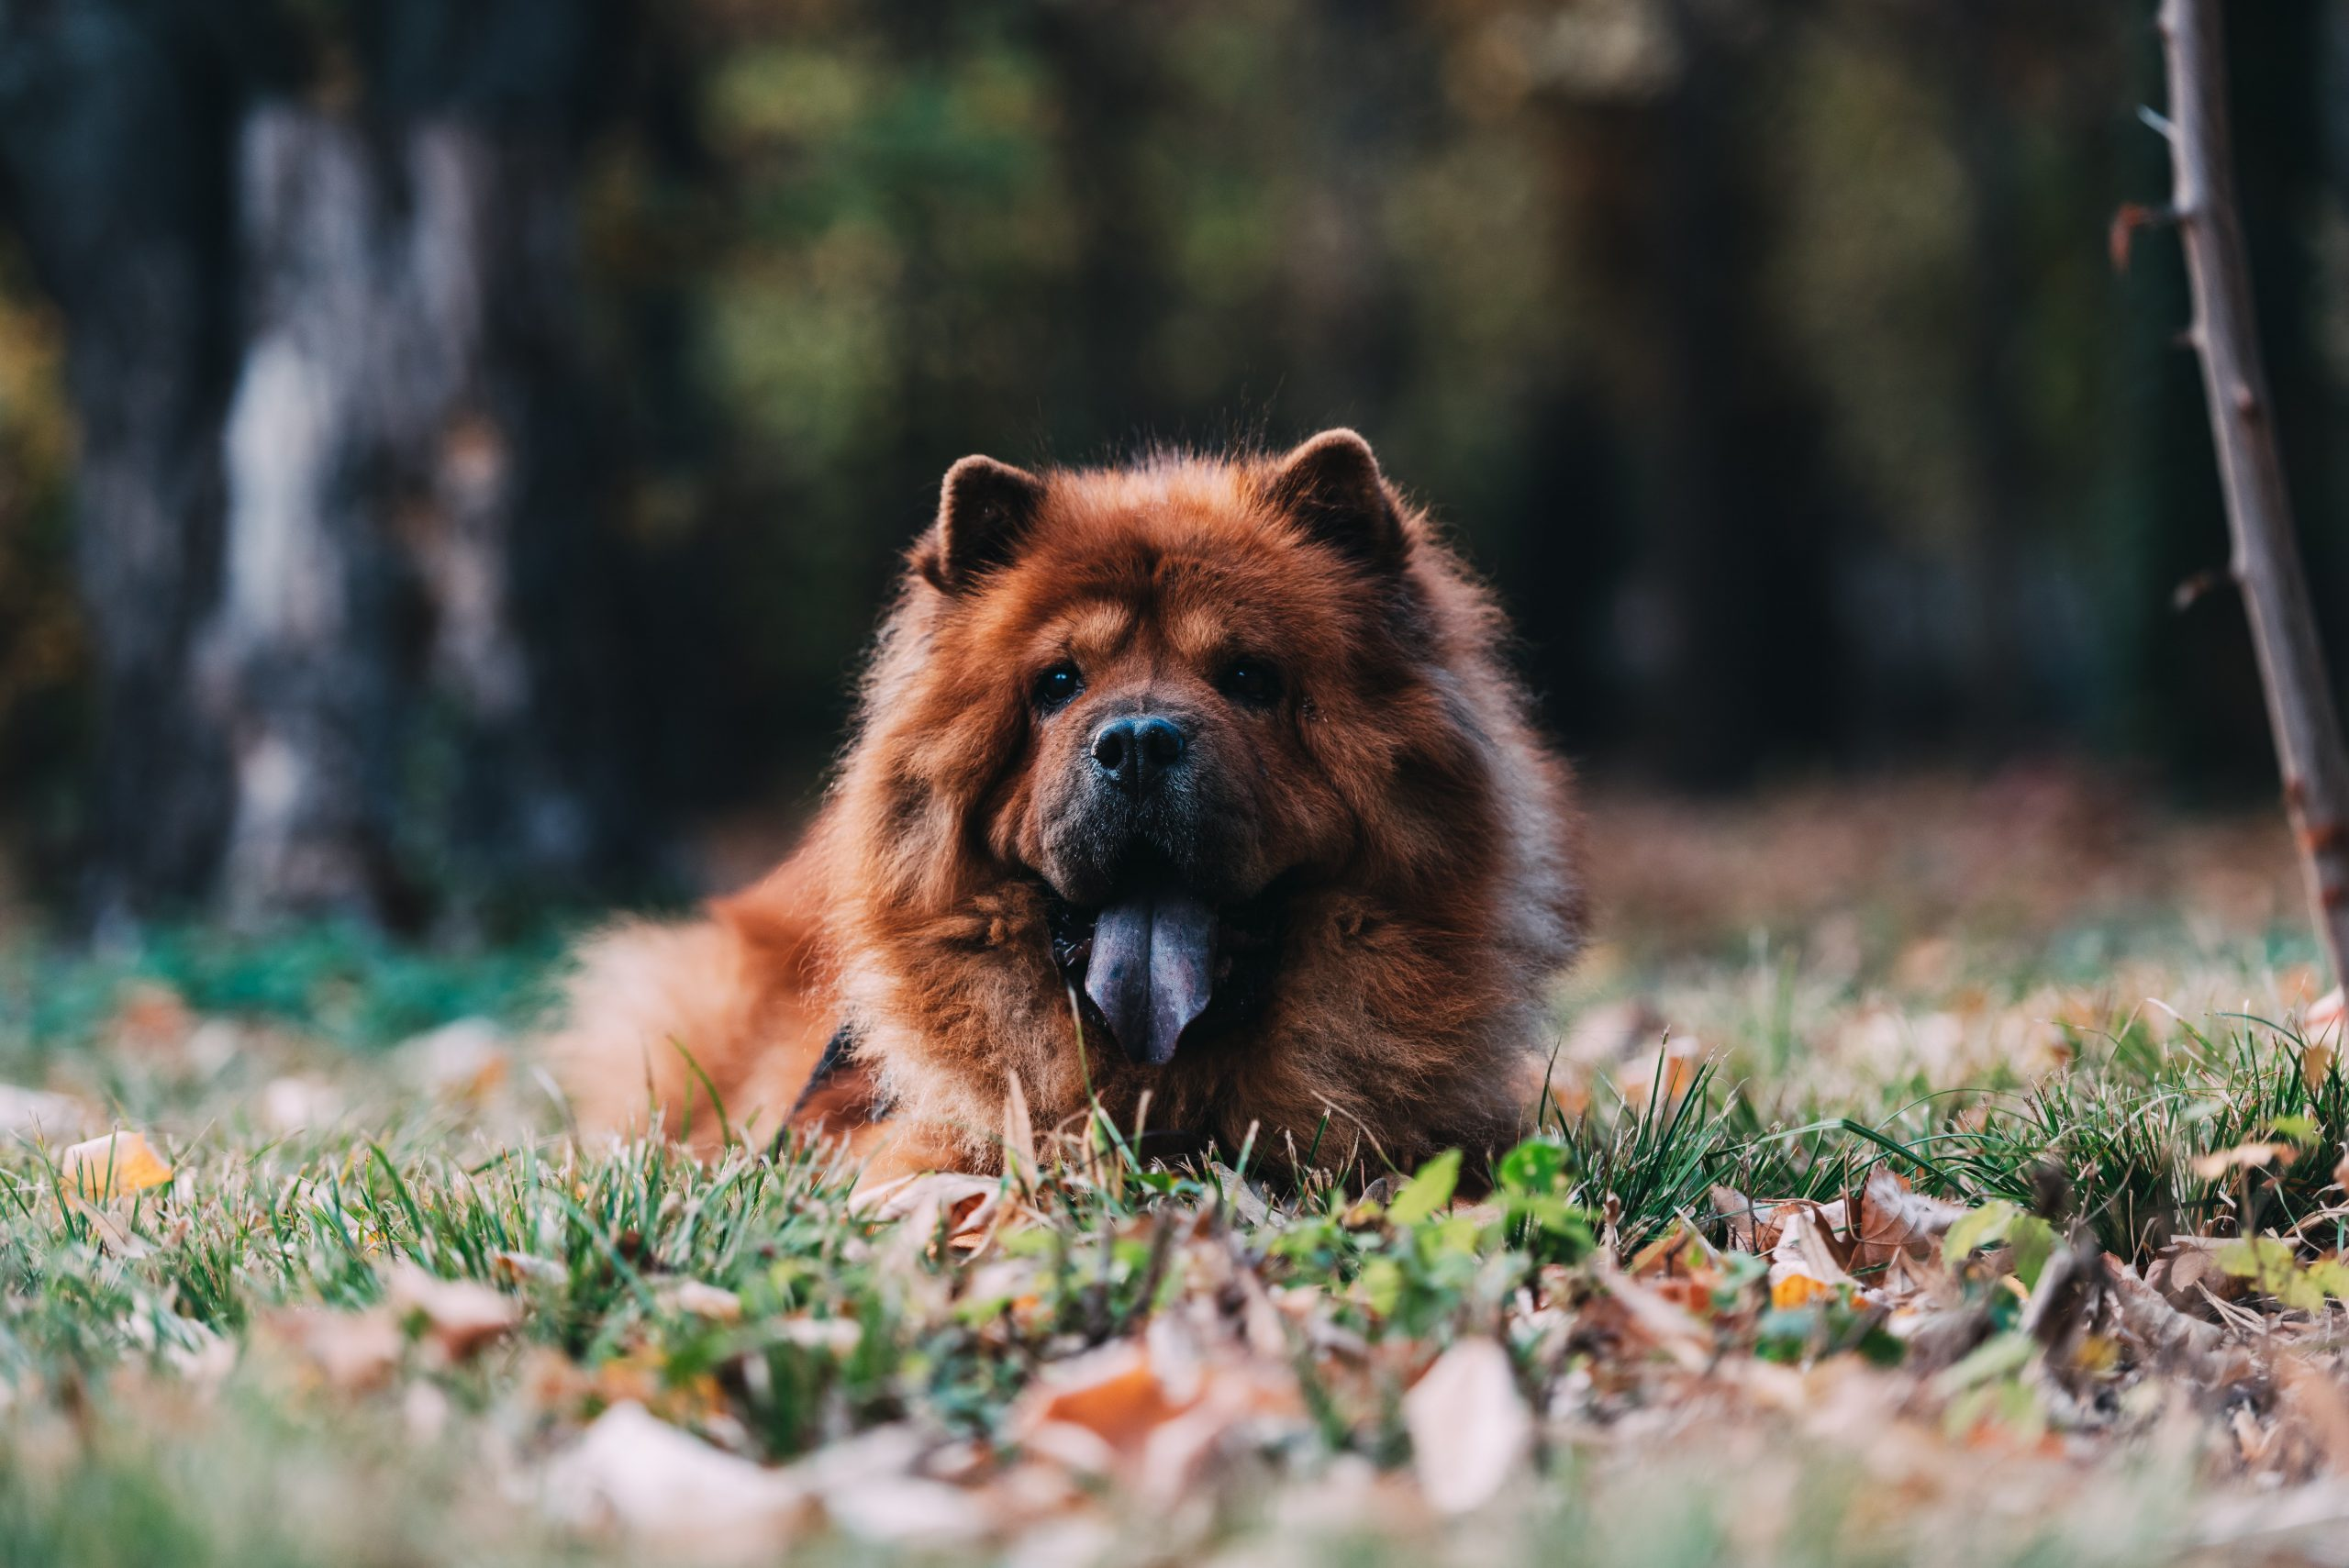 15 Dog Breeds that Look Like Actual Bears